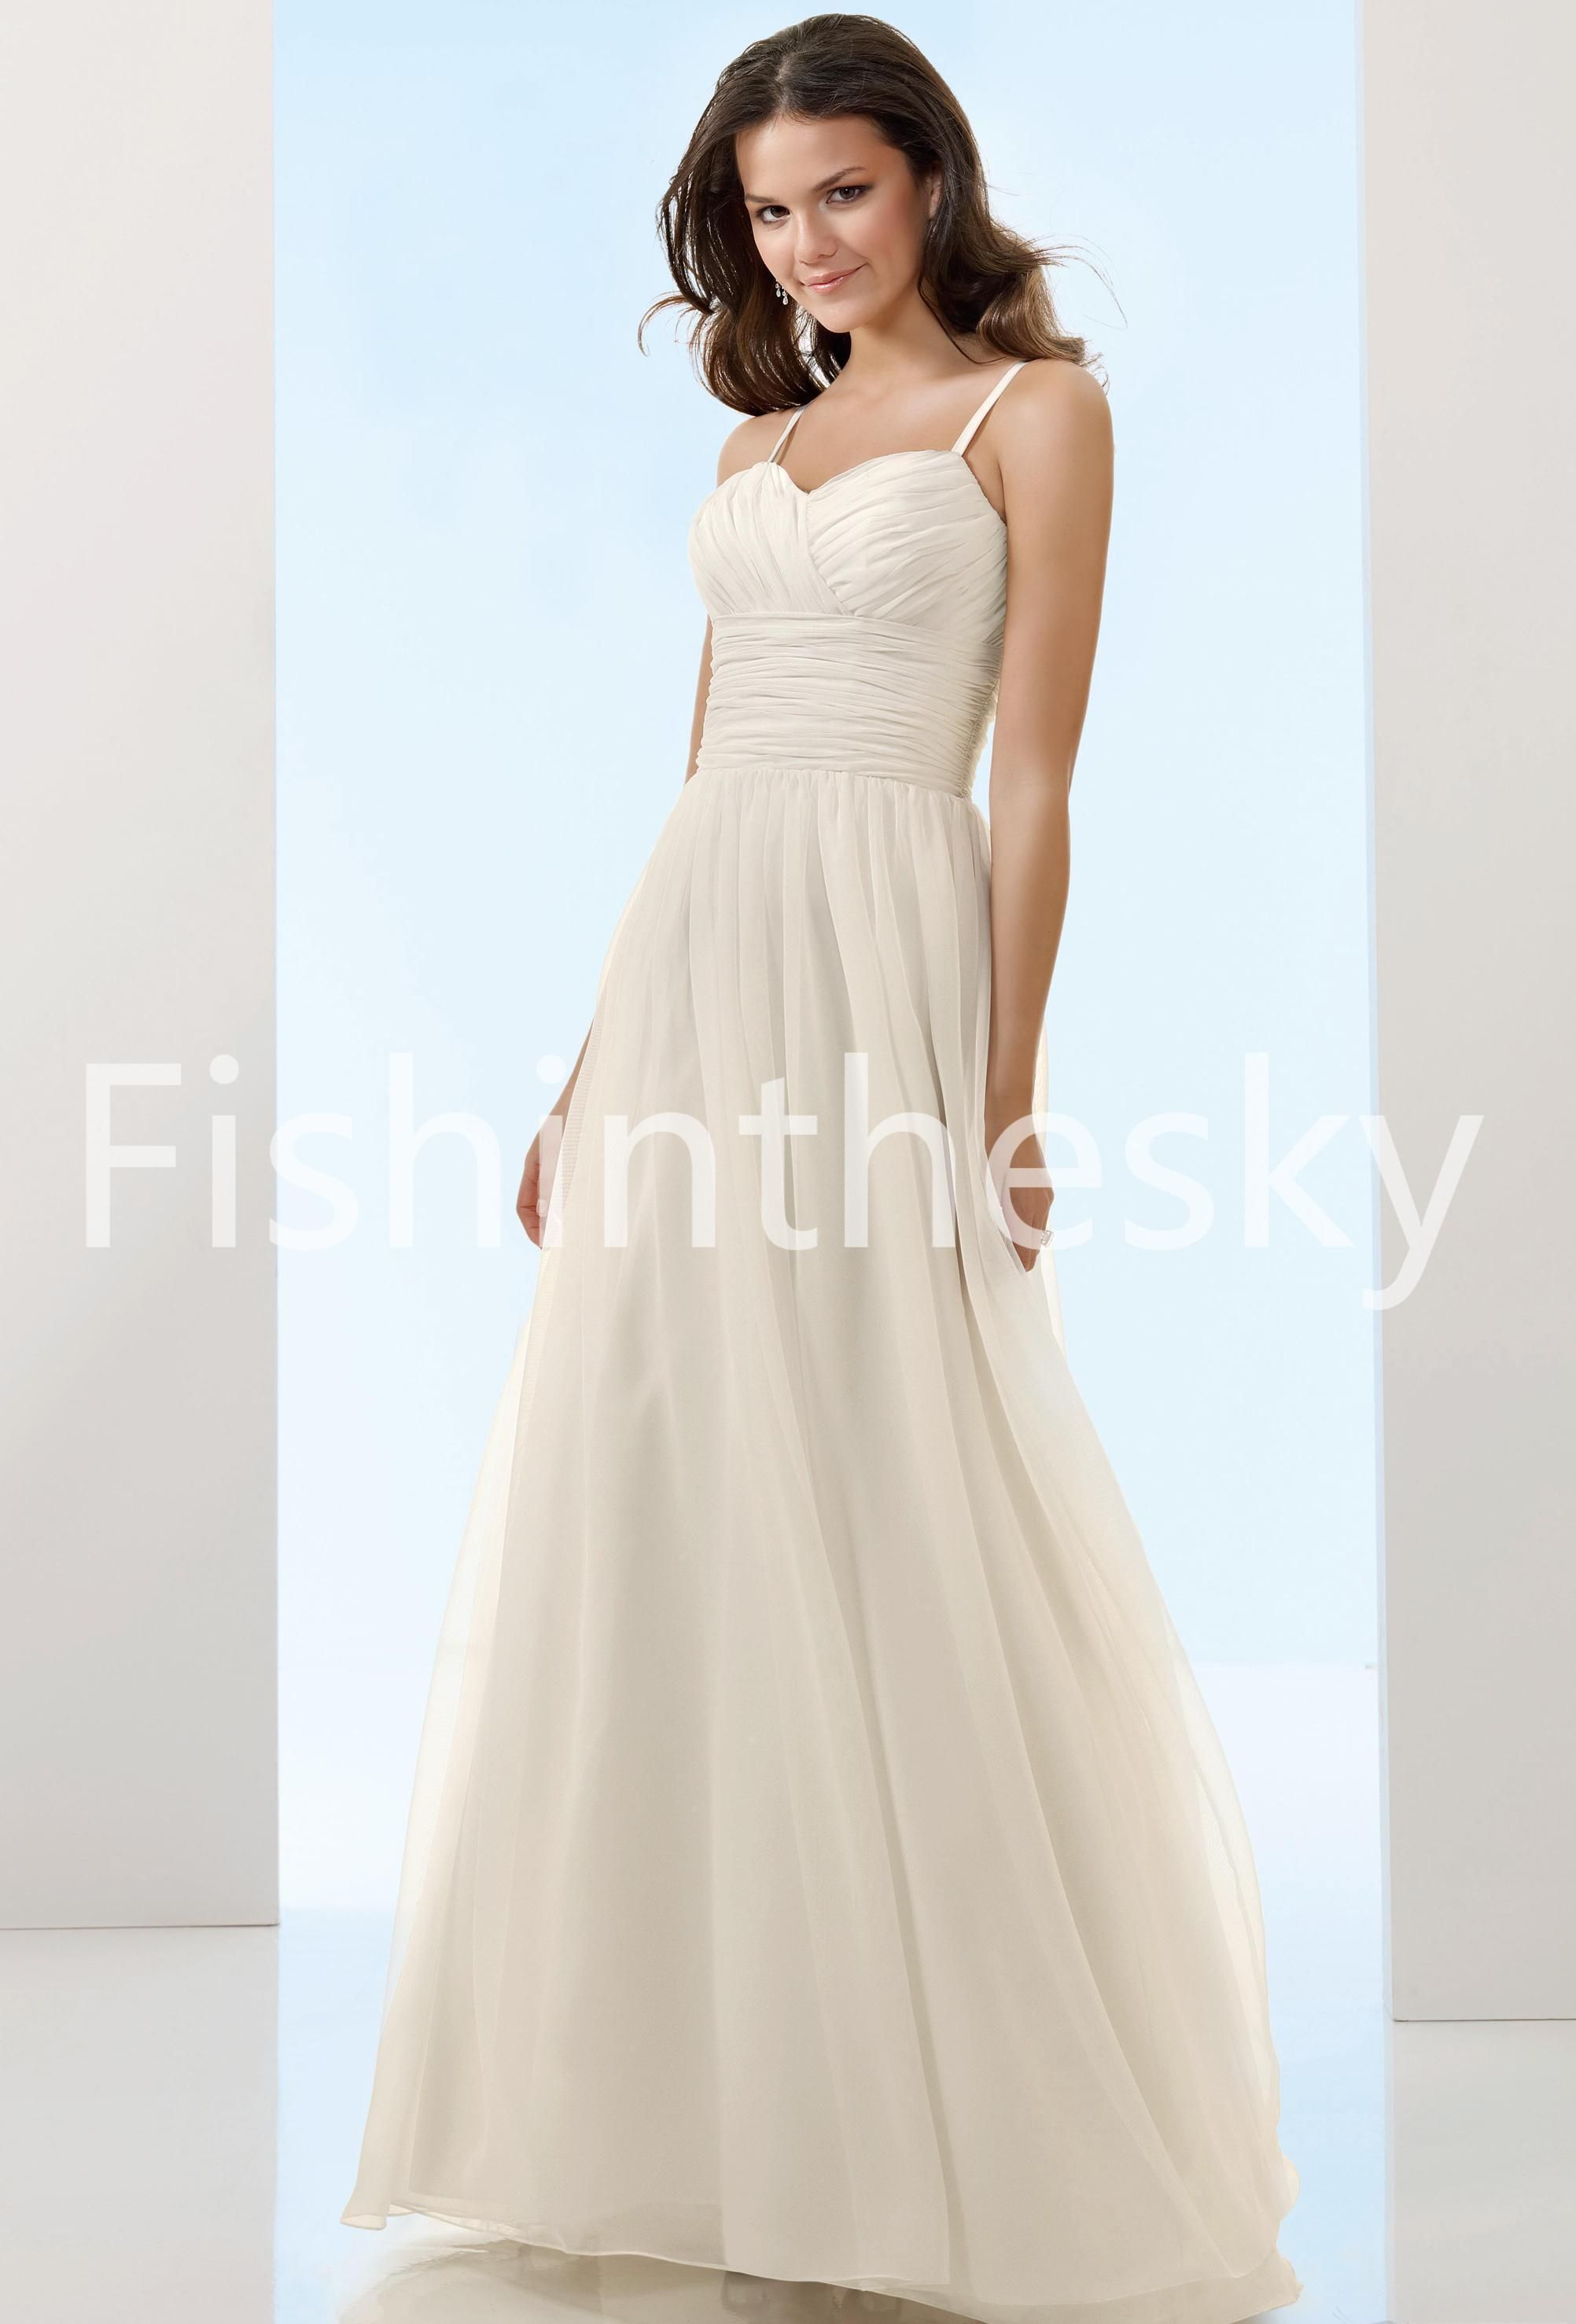 Chiffon wedding dresses  Empire Sweetheart Court Chiffon Bridal Gowns  Wedding Gowns